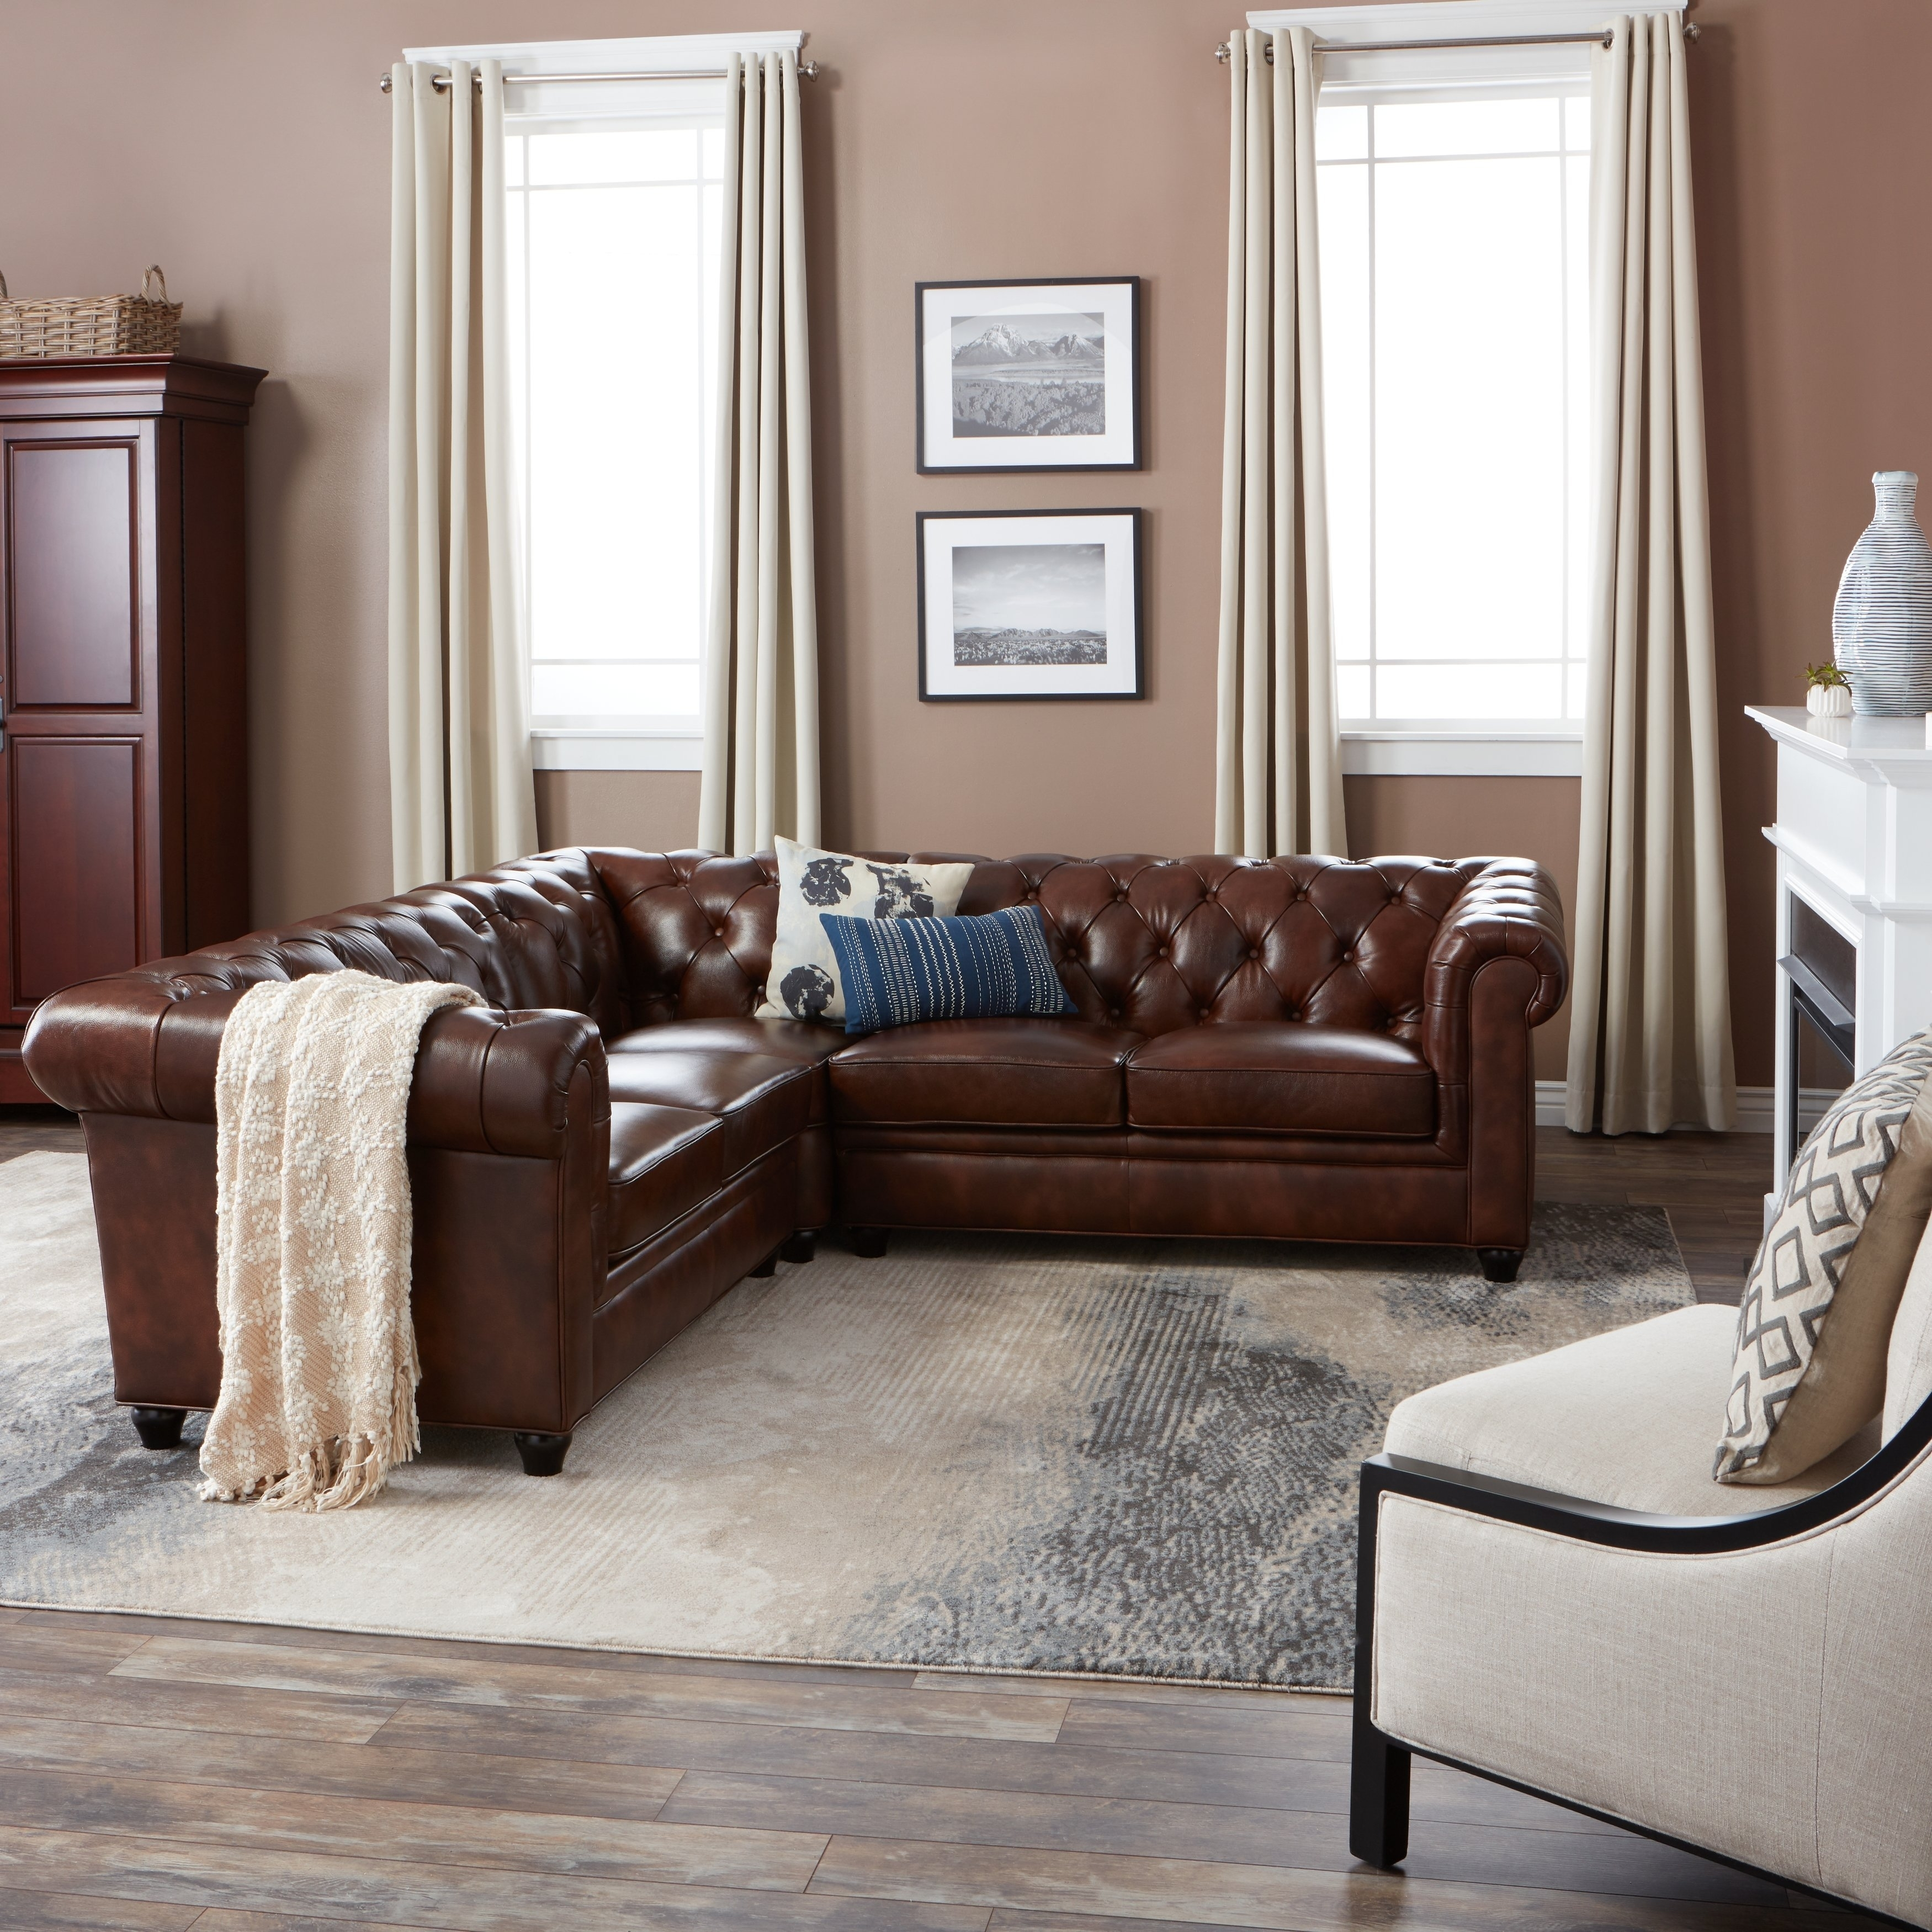 Shop Abbyson Tuscan Tufted Top Grain Leather 3-Piece Sectional Sofa with Haven 3 Piece Sectionals (Image 27 of 32)